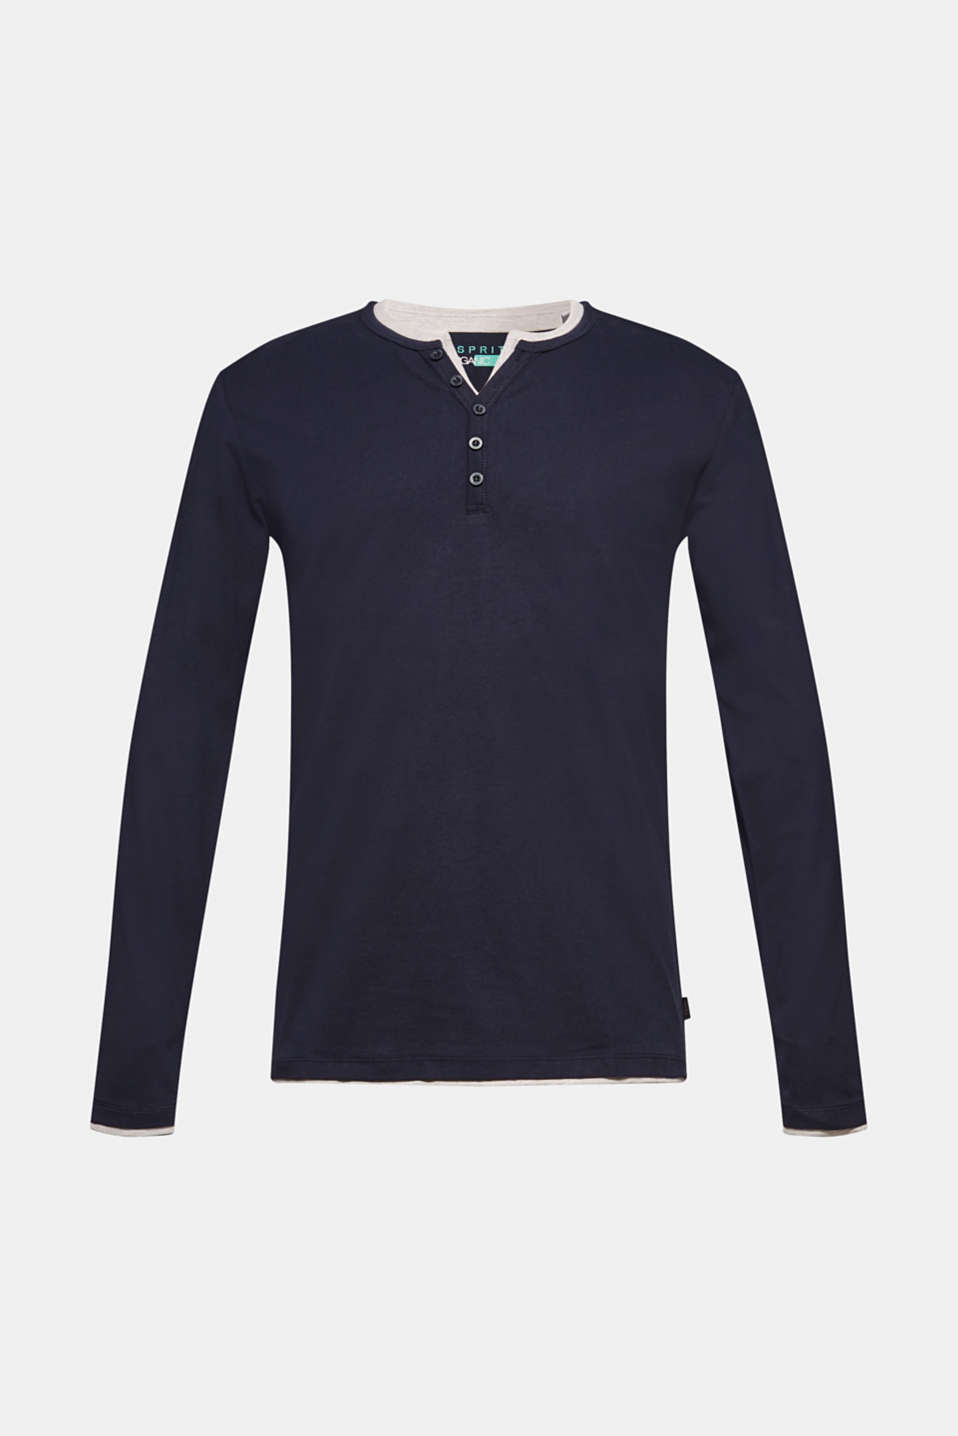 Jersey long sleeve top with a Henley neckline, NAVY, detail image number 5